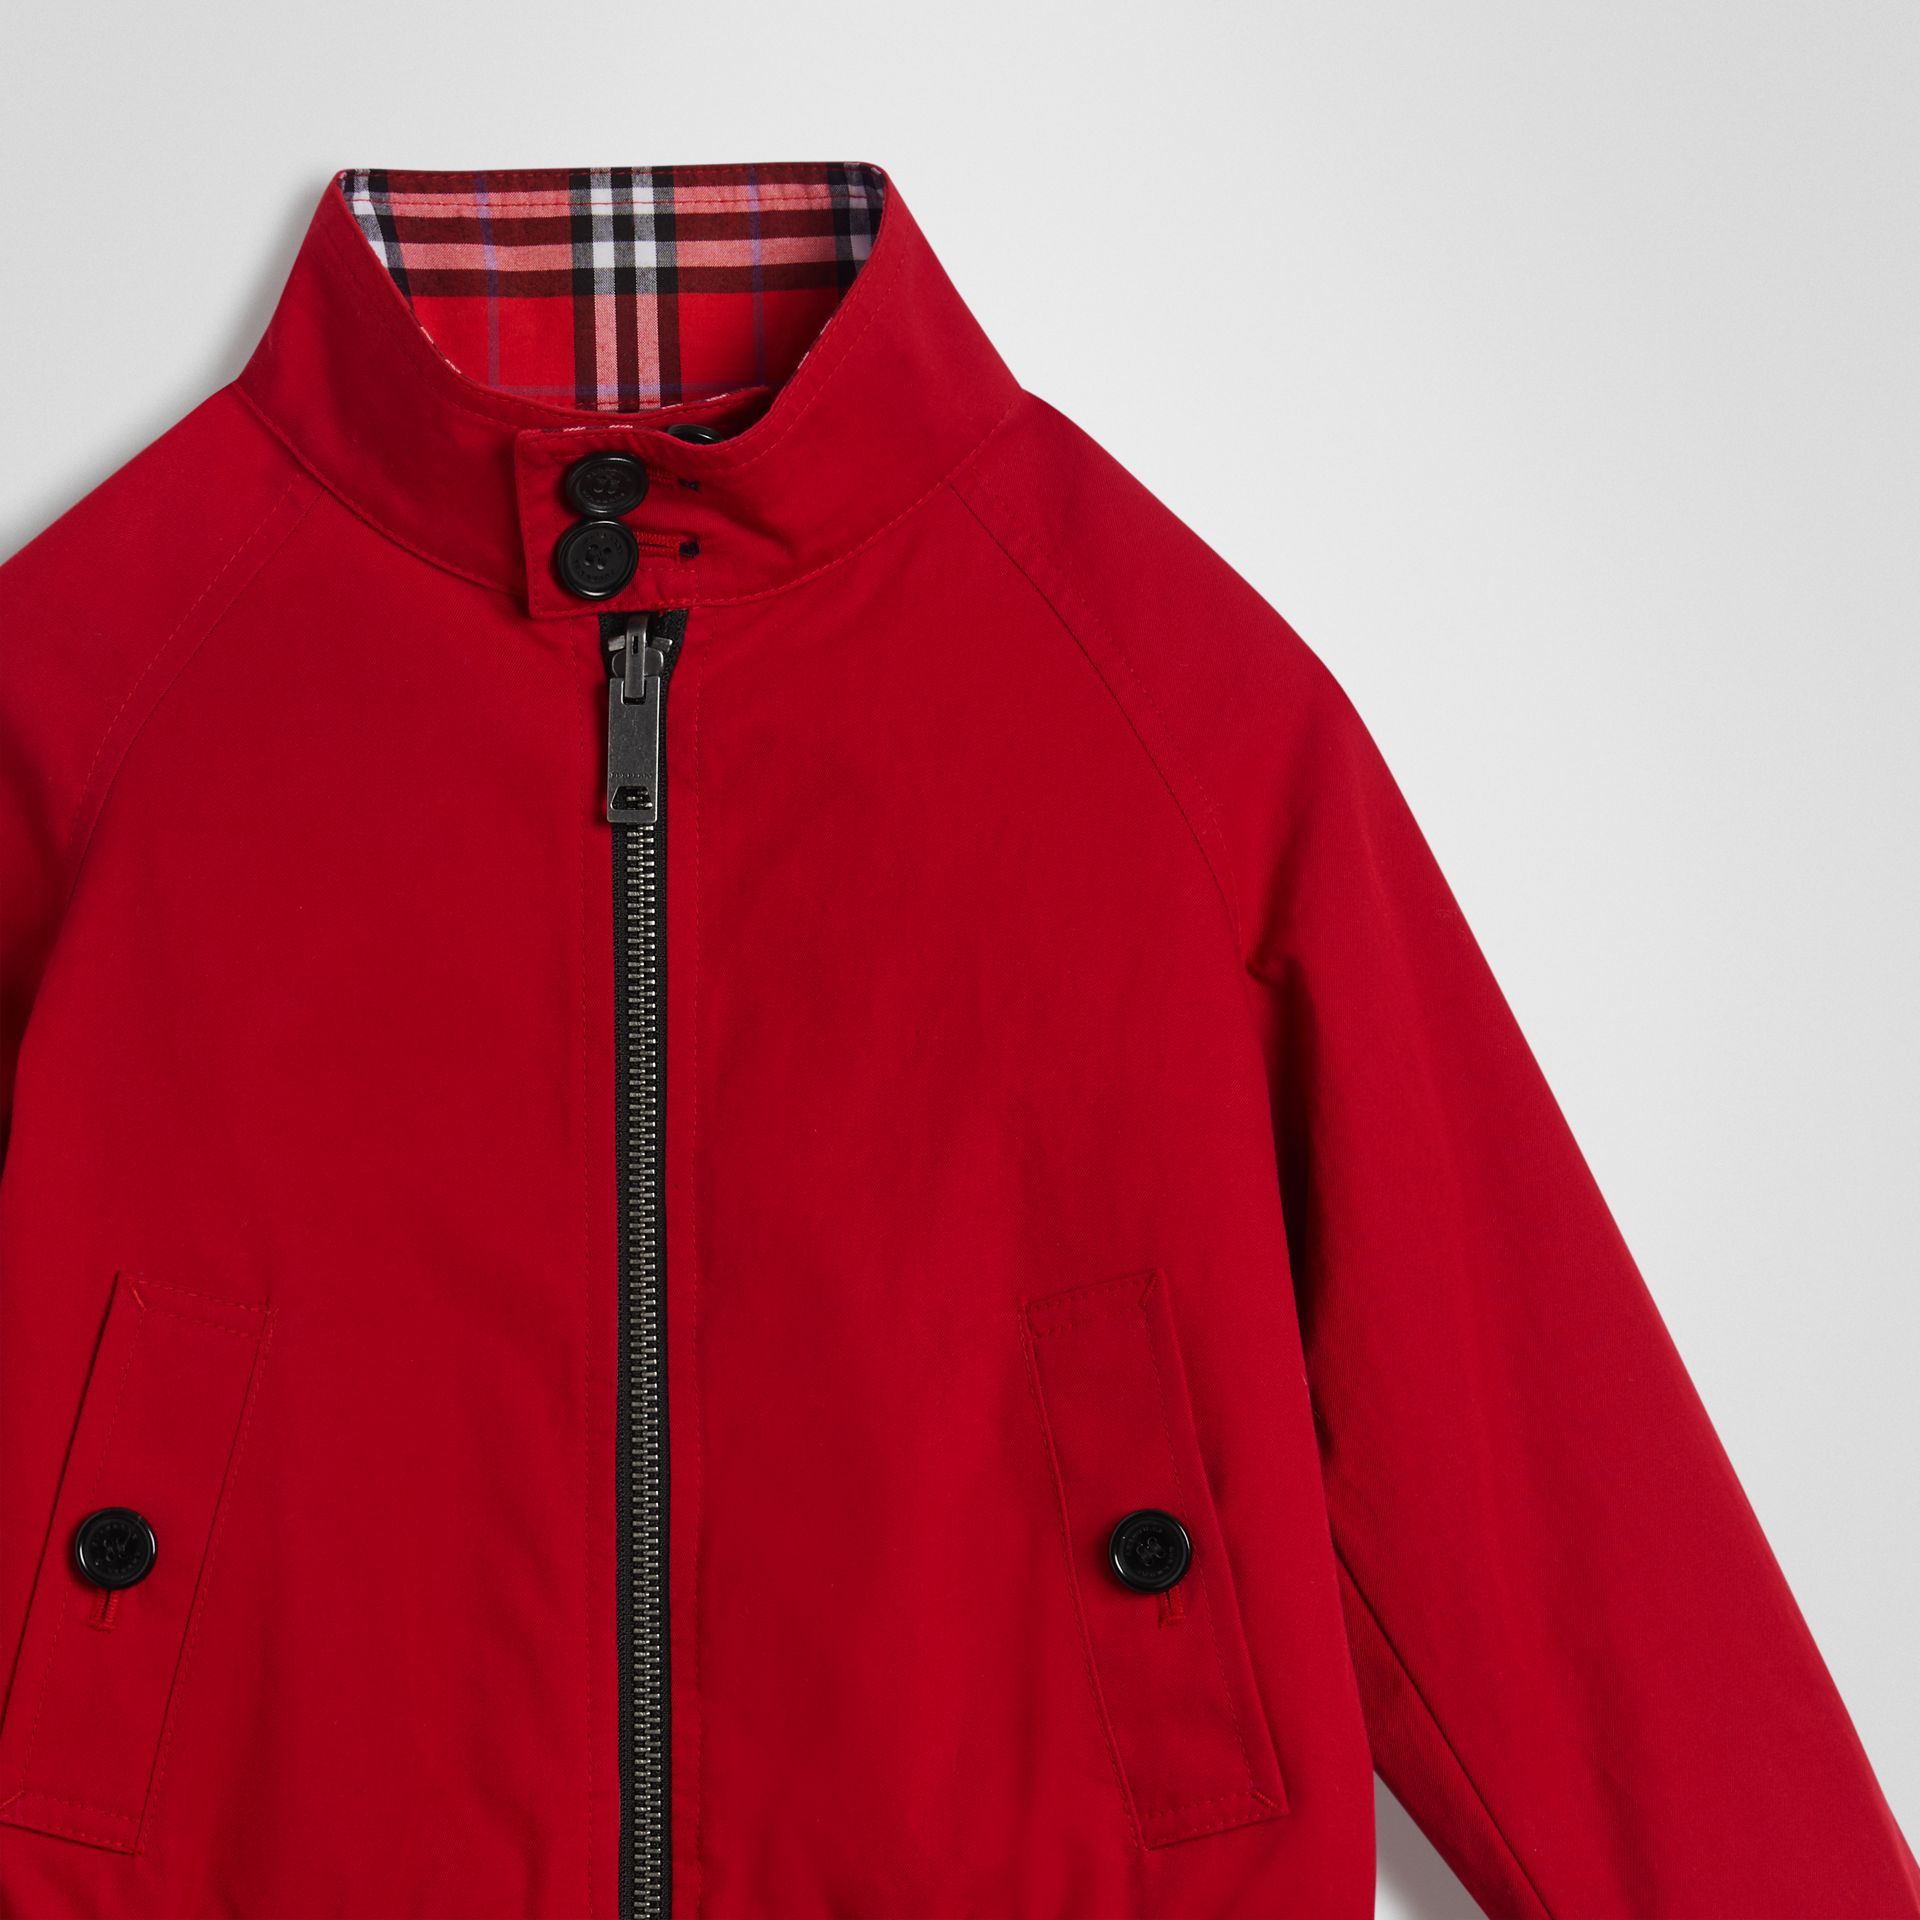 Reversible Check Cotton Harrington Jacket in Bright Red | Burberry - gallery image 3